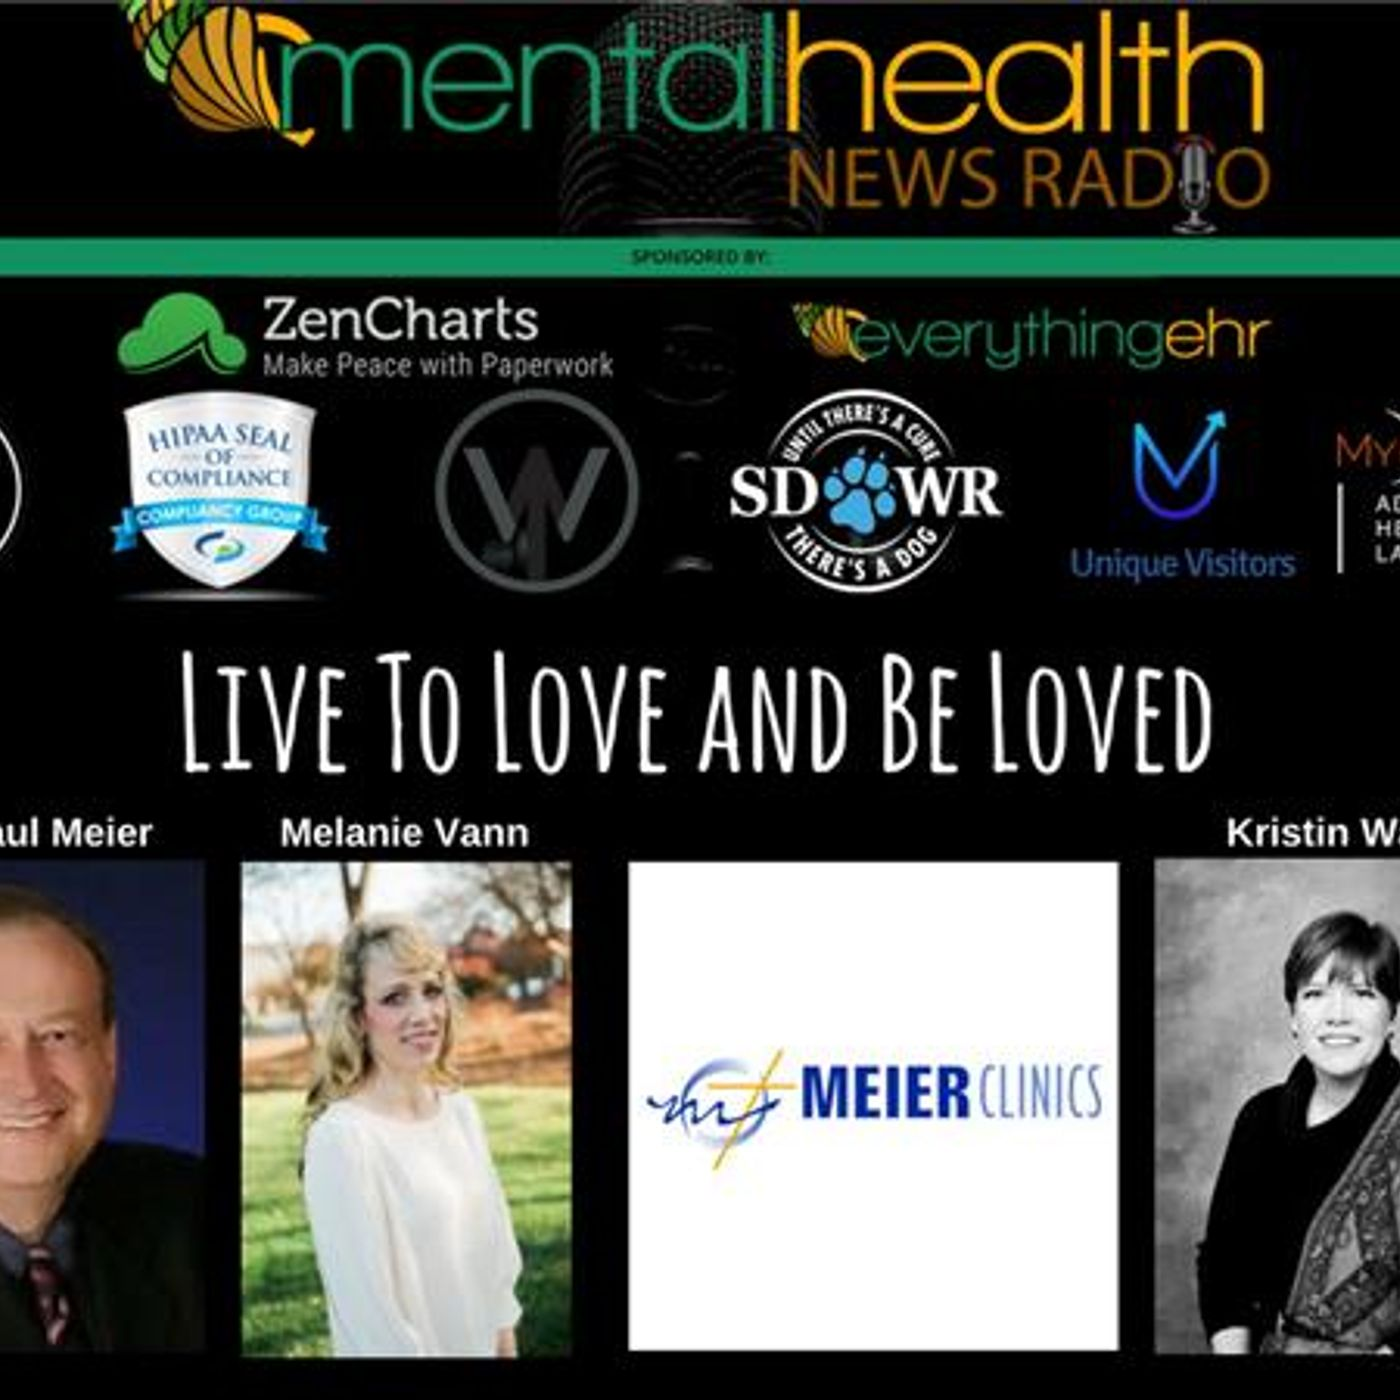 Mental Health News Radio - Dr. Paul Meier Round Table: Live To Love And Be Loved